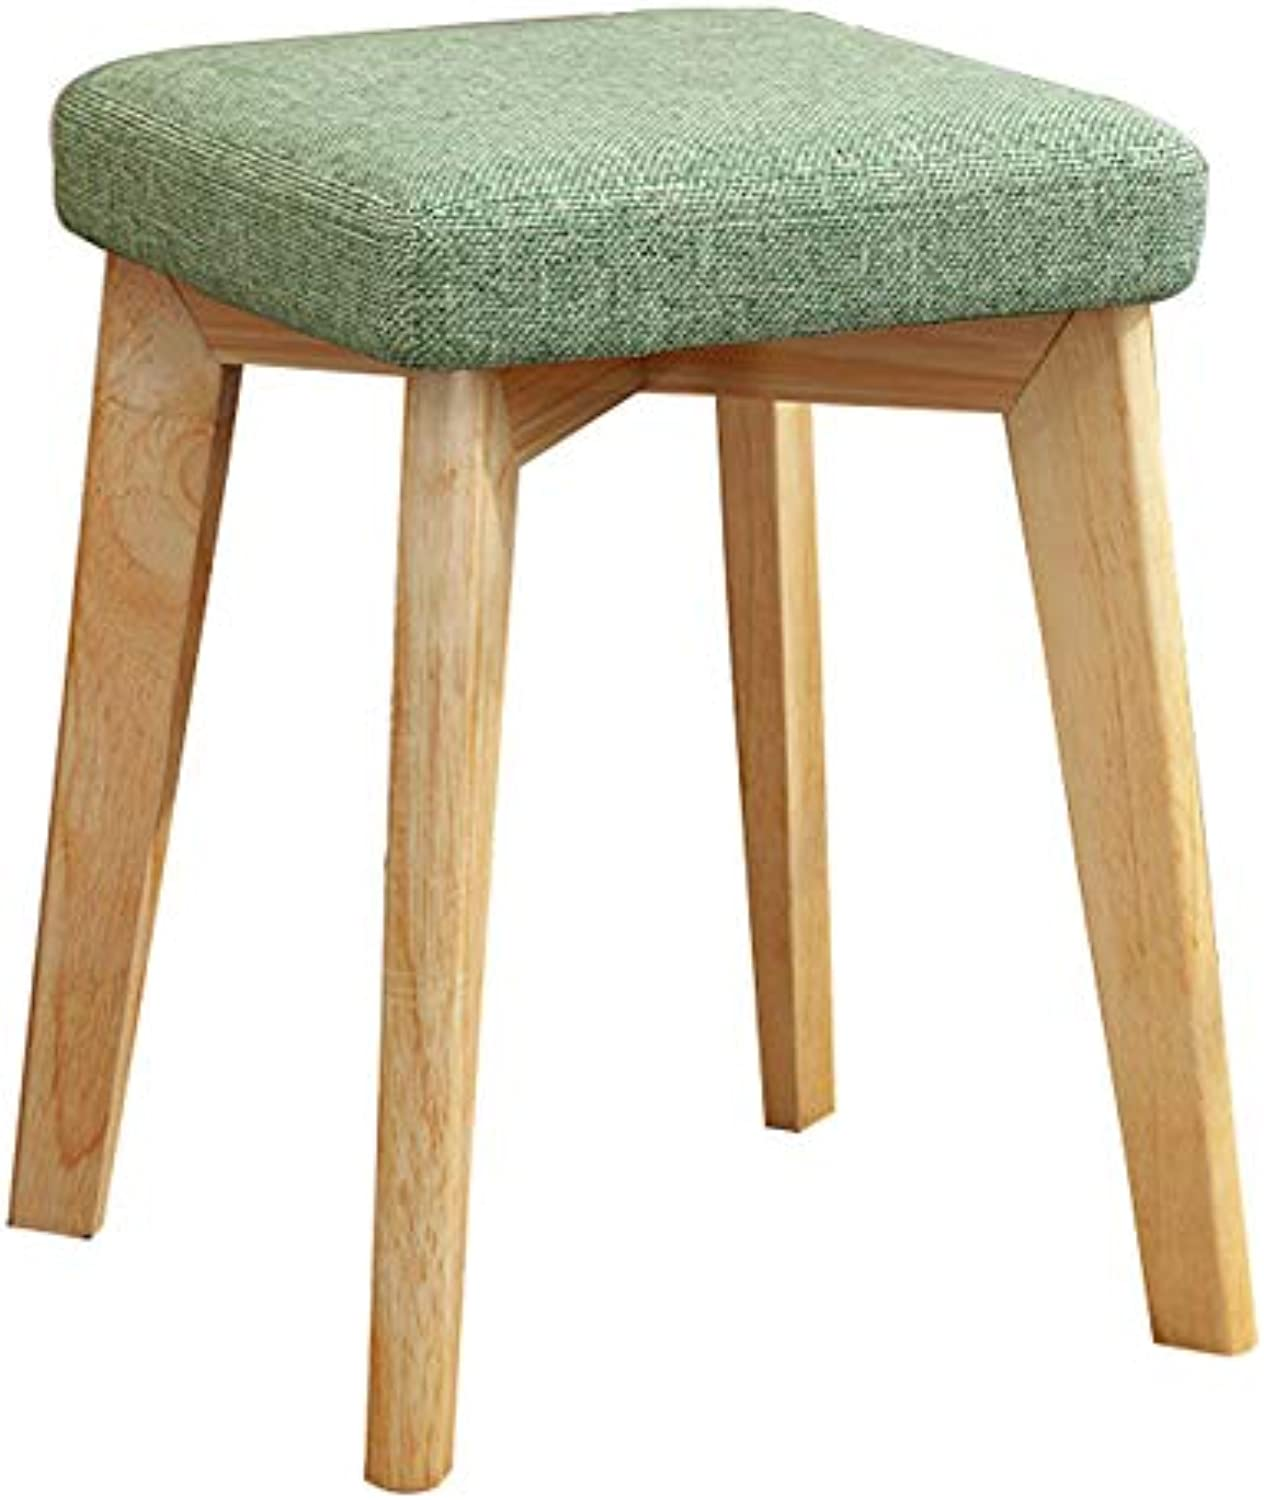 Small Square stool Fashion Modern Makeup stool Simple Solid Wood Chair Adult Fabric Soft stool